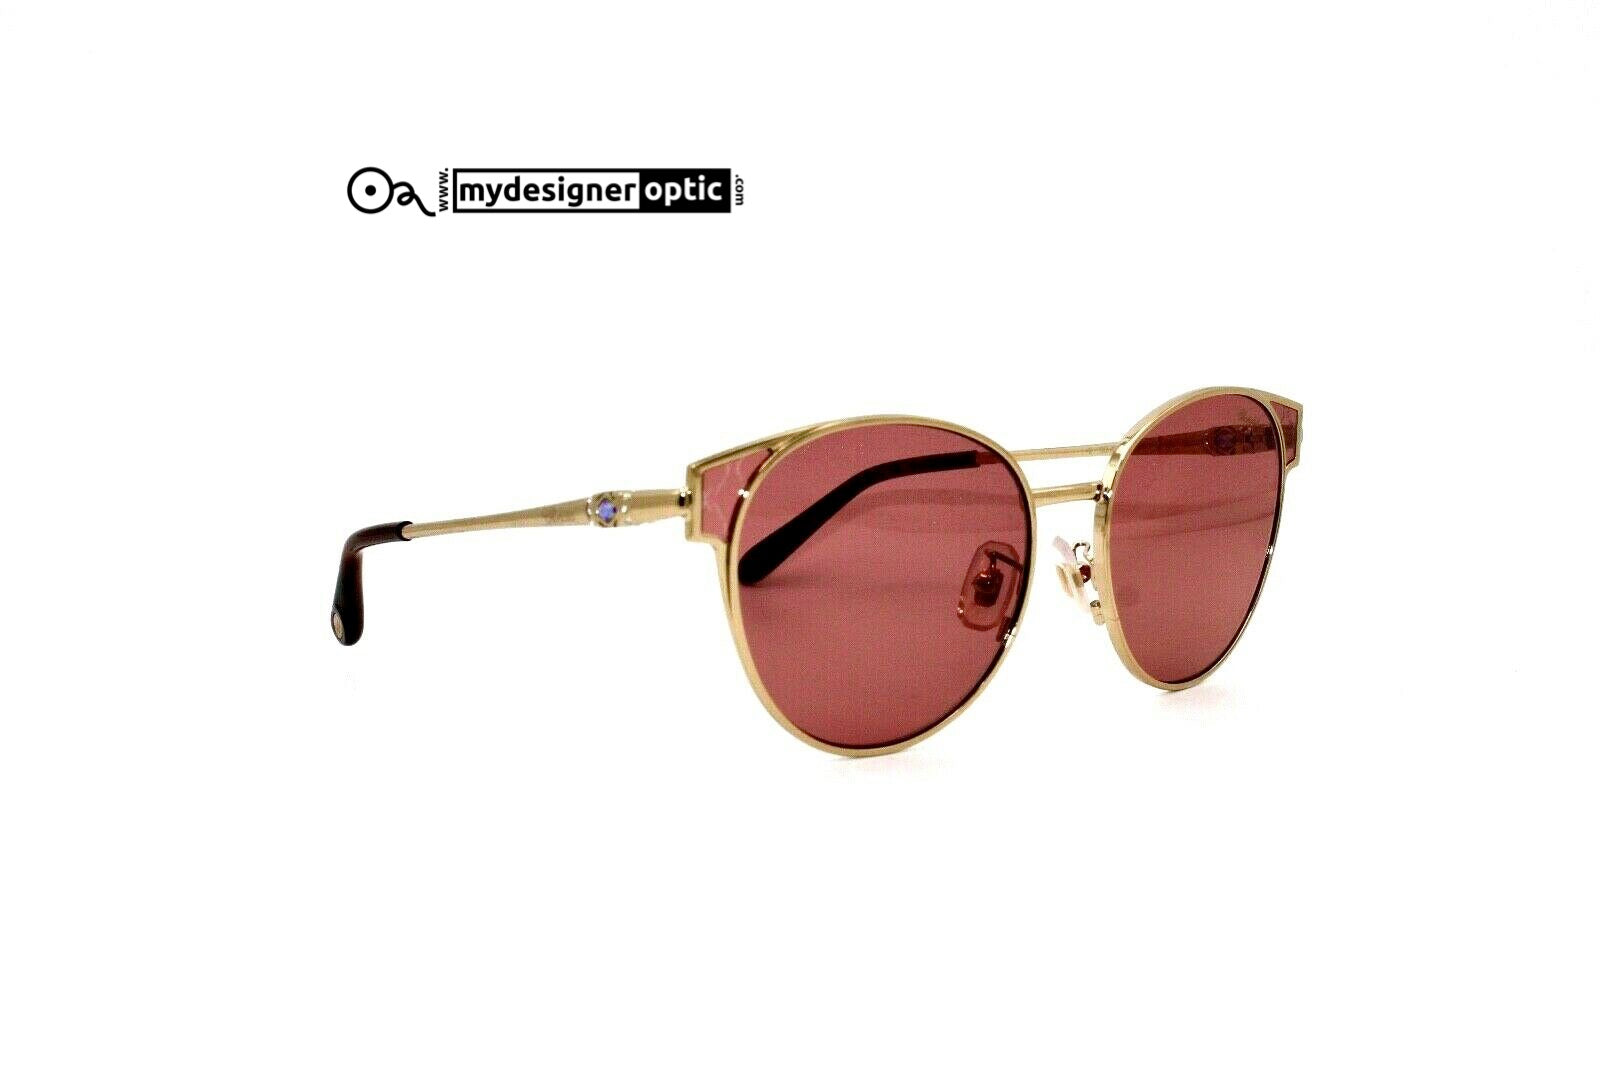 Chopard Sunglasses SCHC215 56-17 0594 135 Made in Italy - Mydesigneroptic